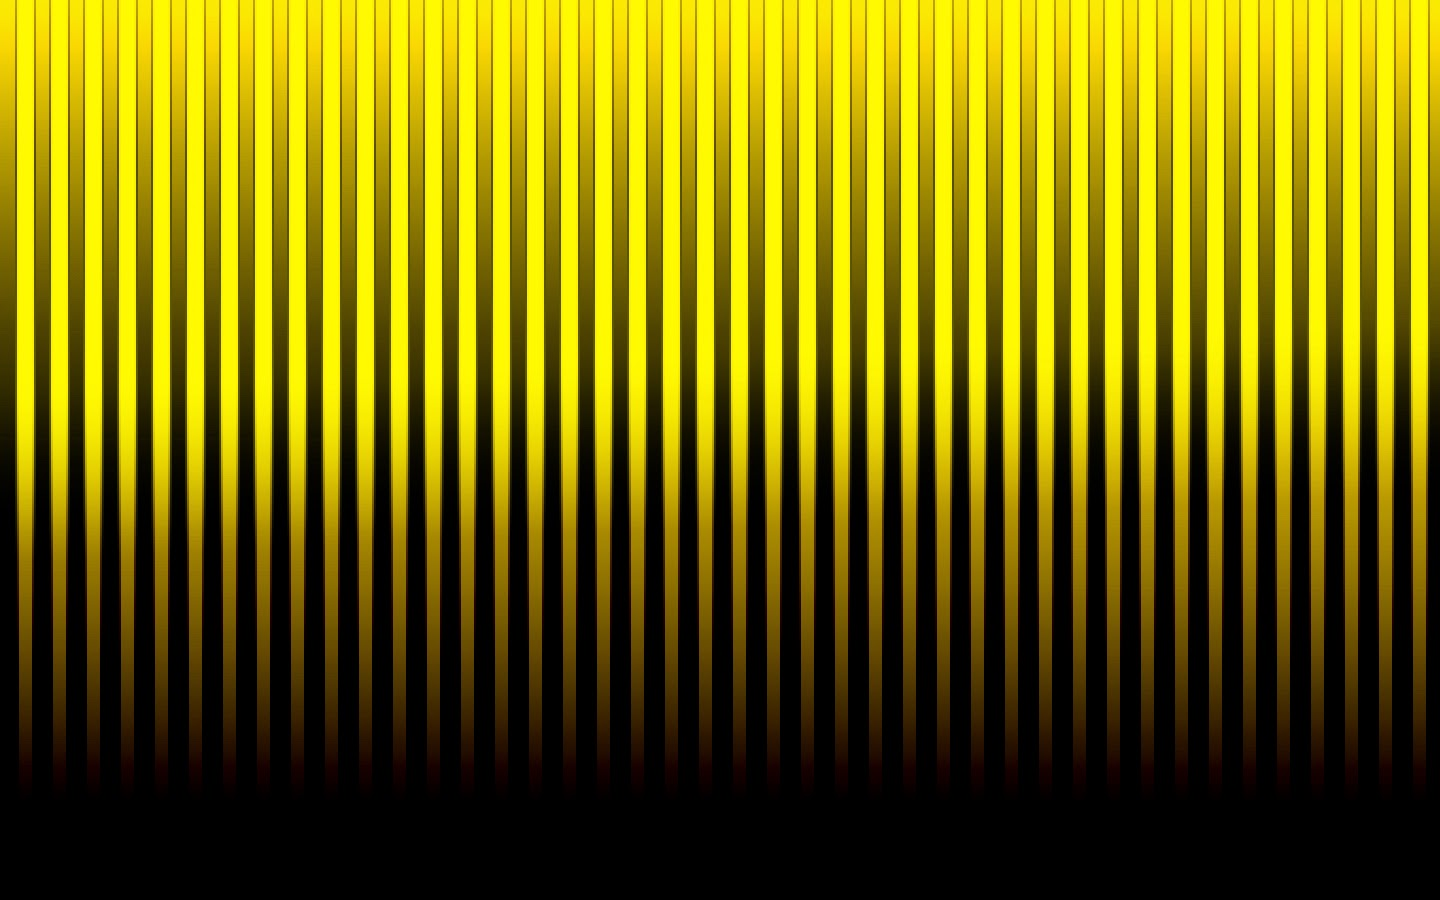 Sh Yn Design Stripe Pattern Wallpaper   Yellow Black 1440x900